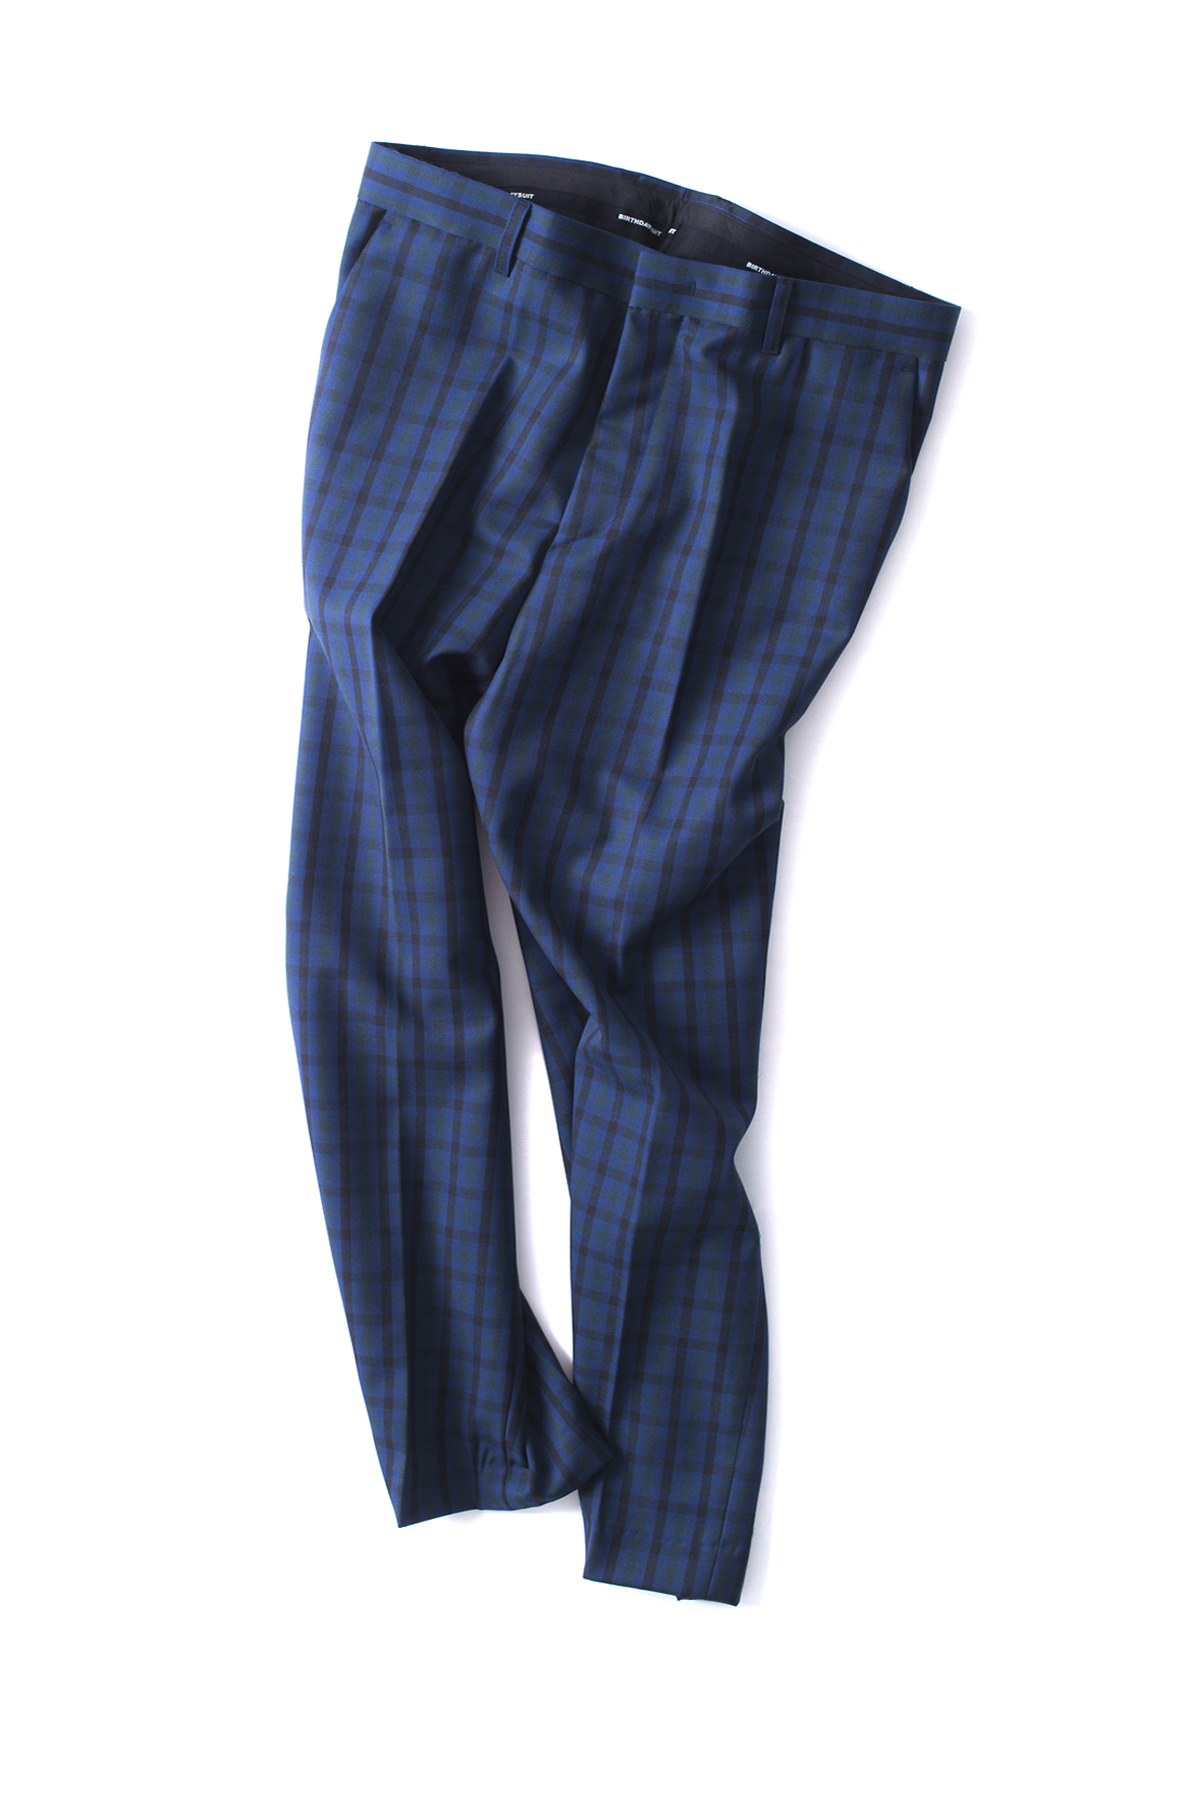 BIRTHDAYSUIT : Wool Check Slim Pants (Navy)